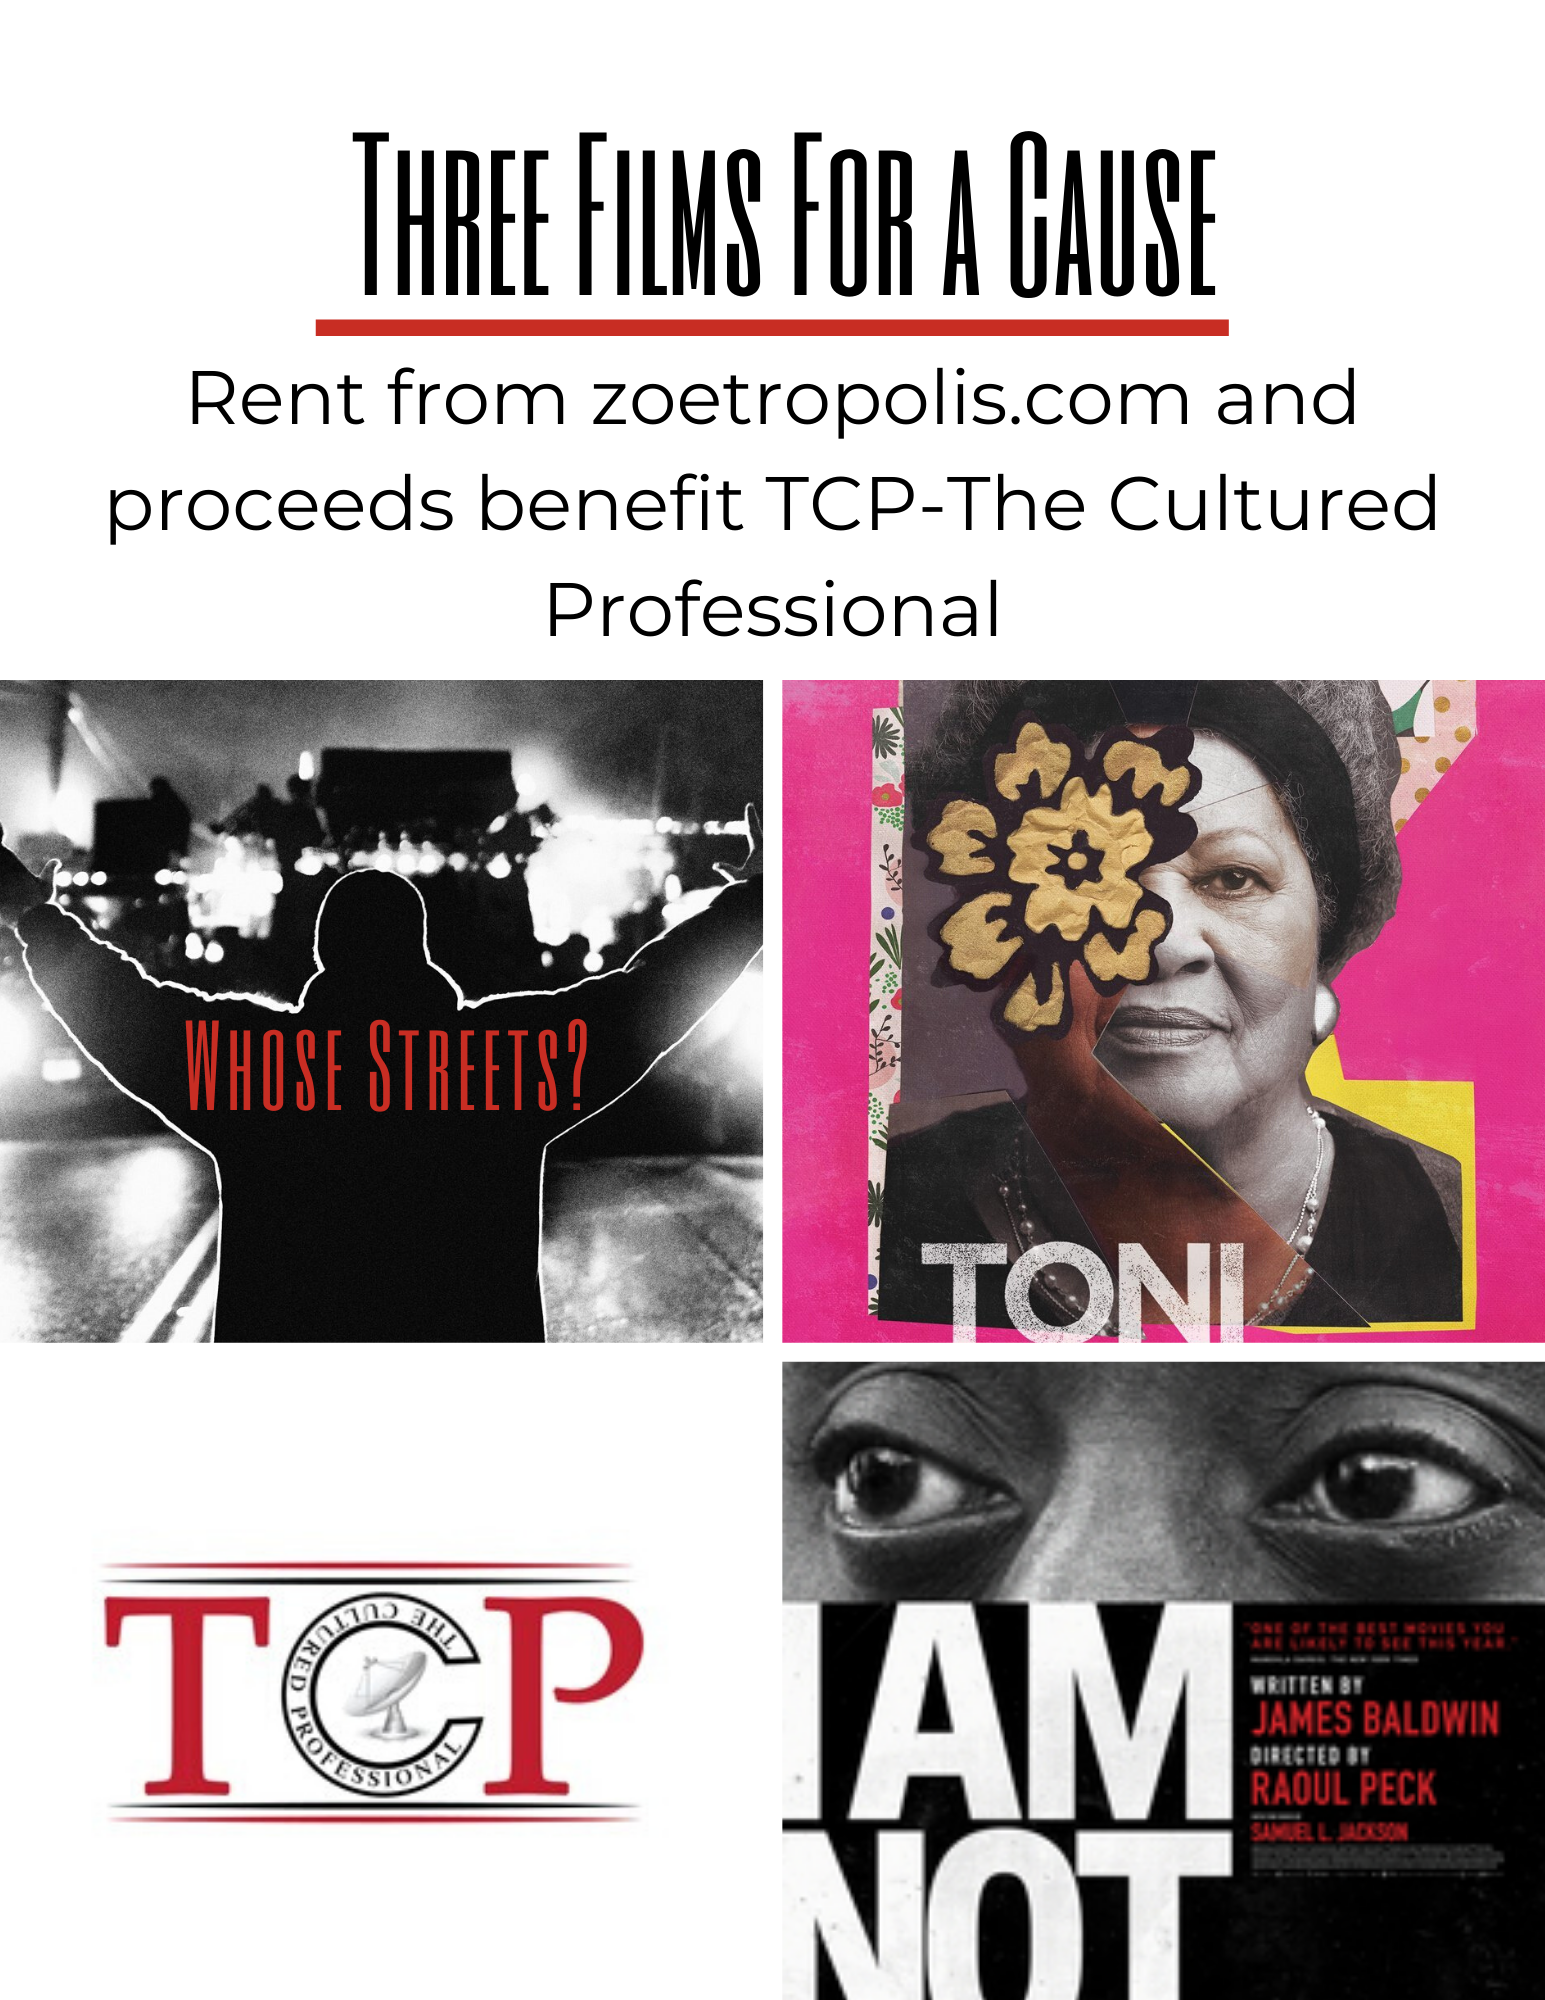 3 Films For A Cause